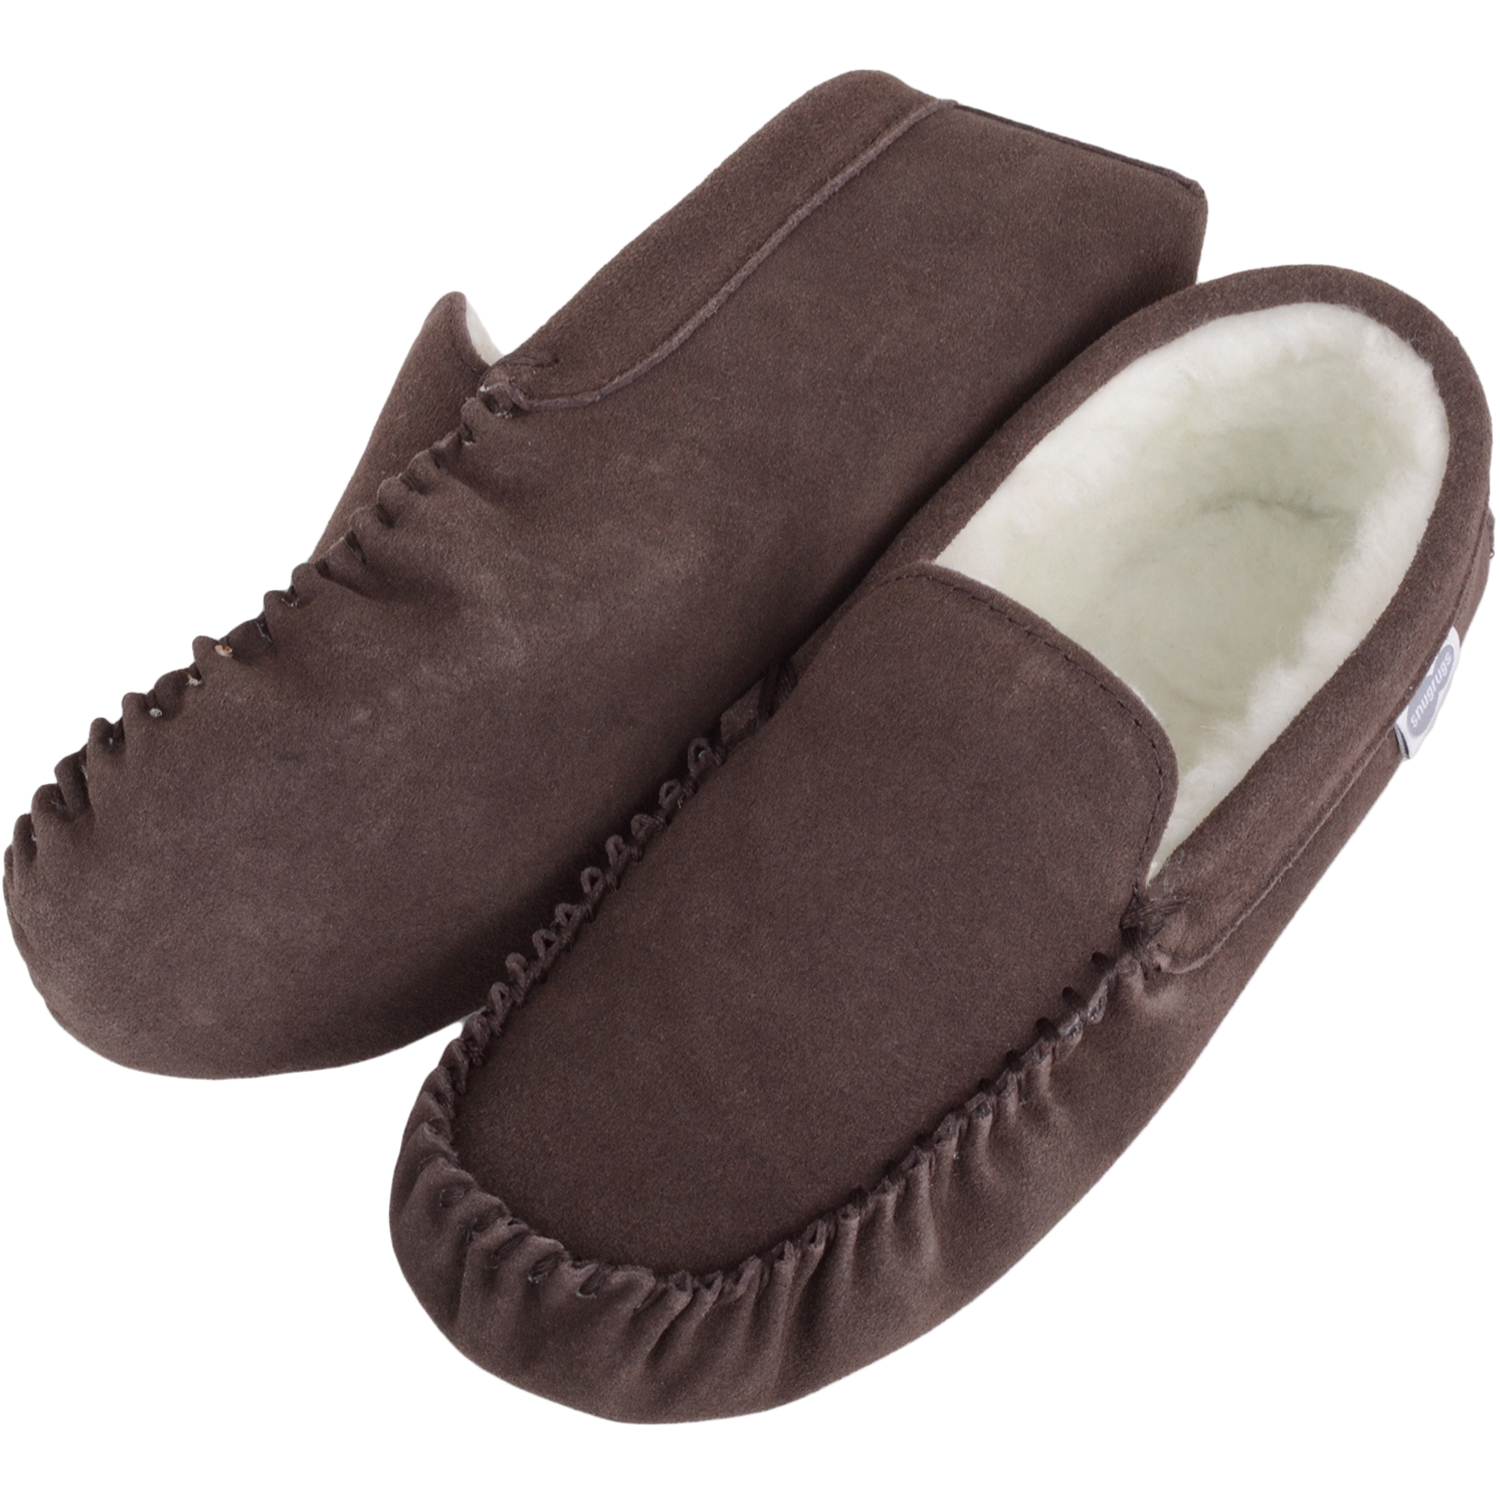 Wool Lined Suede Moccasin with Suede Sole - Dark Brown - Ronnie